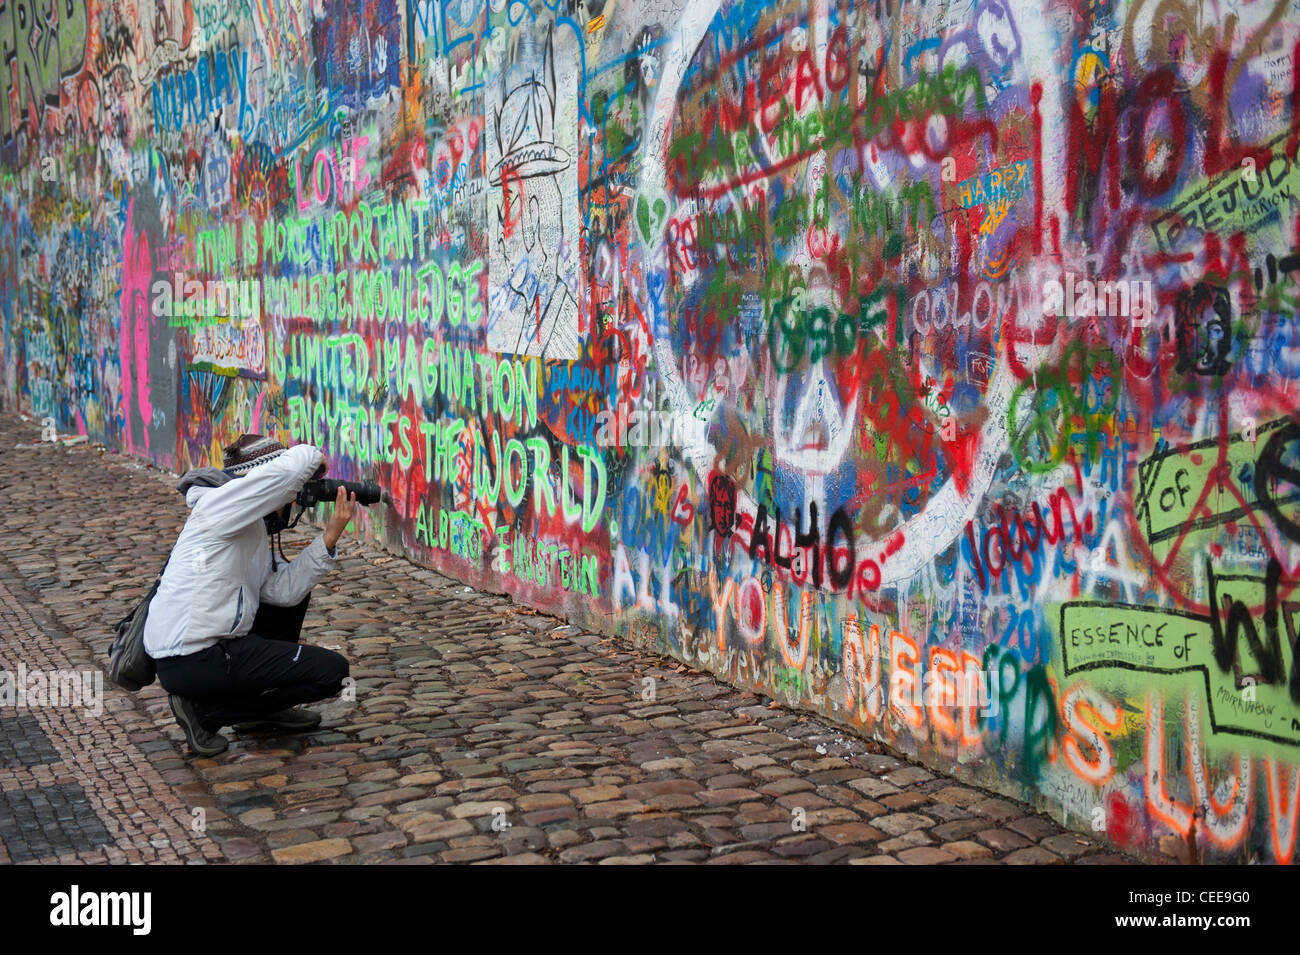 Tourist at the John Lennon tribute wall in the Mala Strana district of Prague, Czech Republic Stock Photo